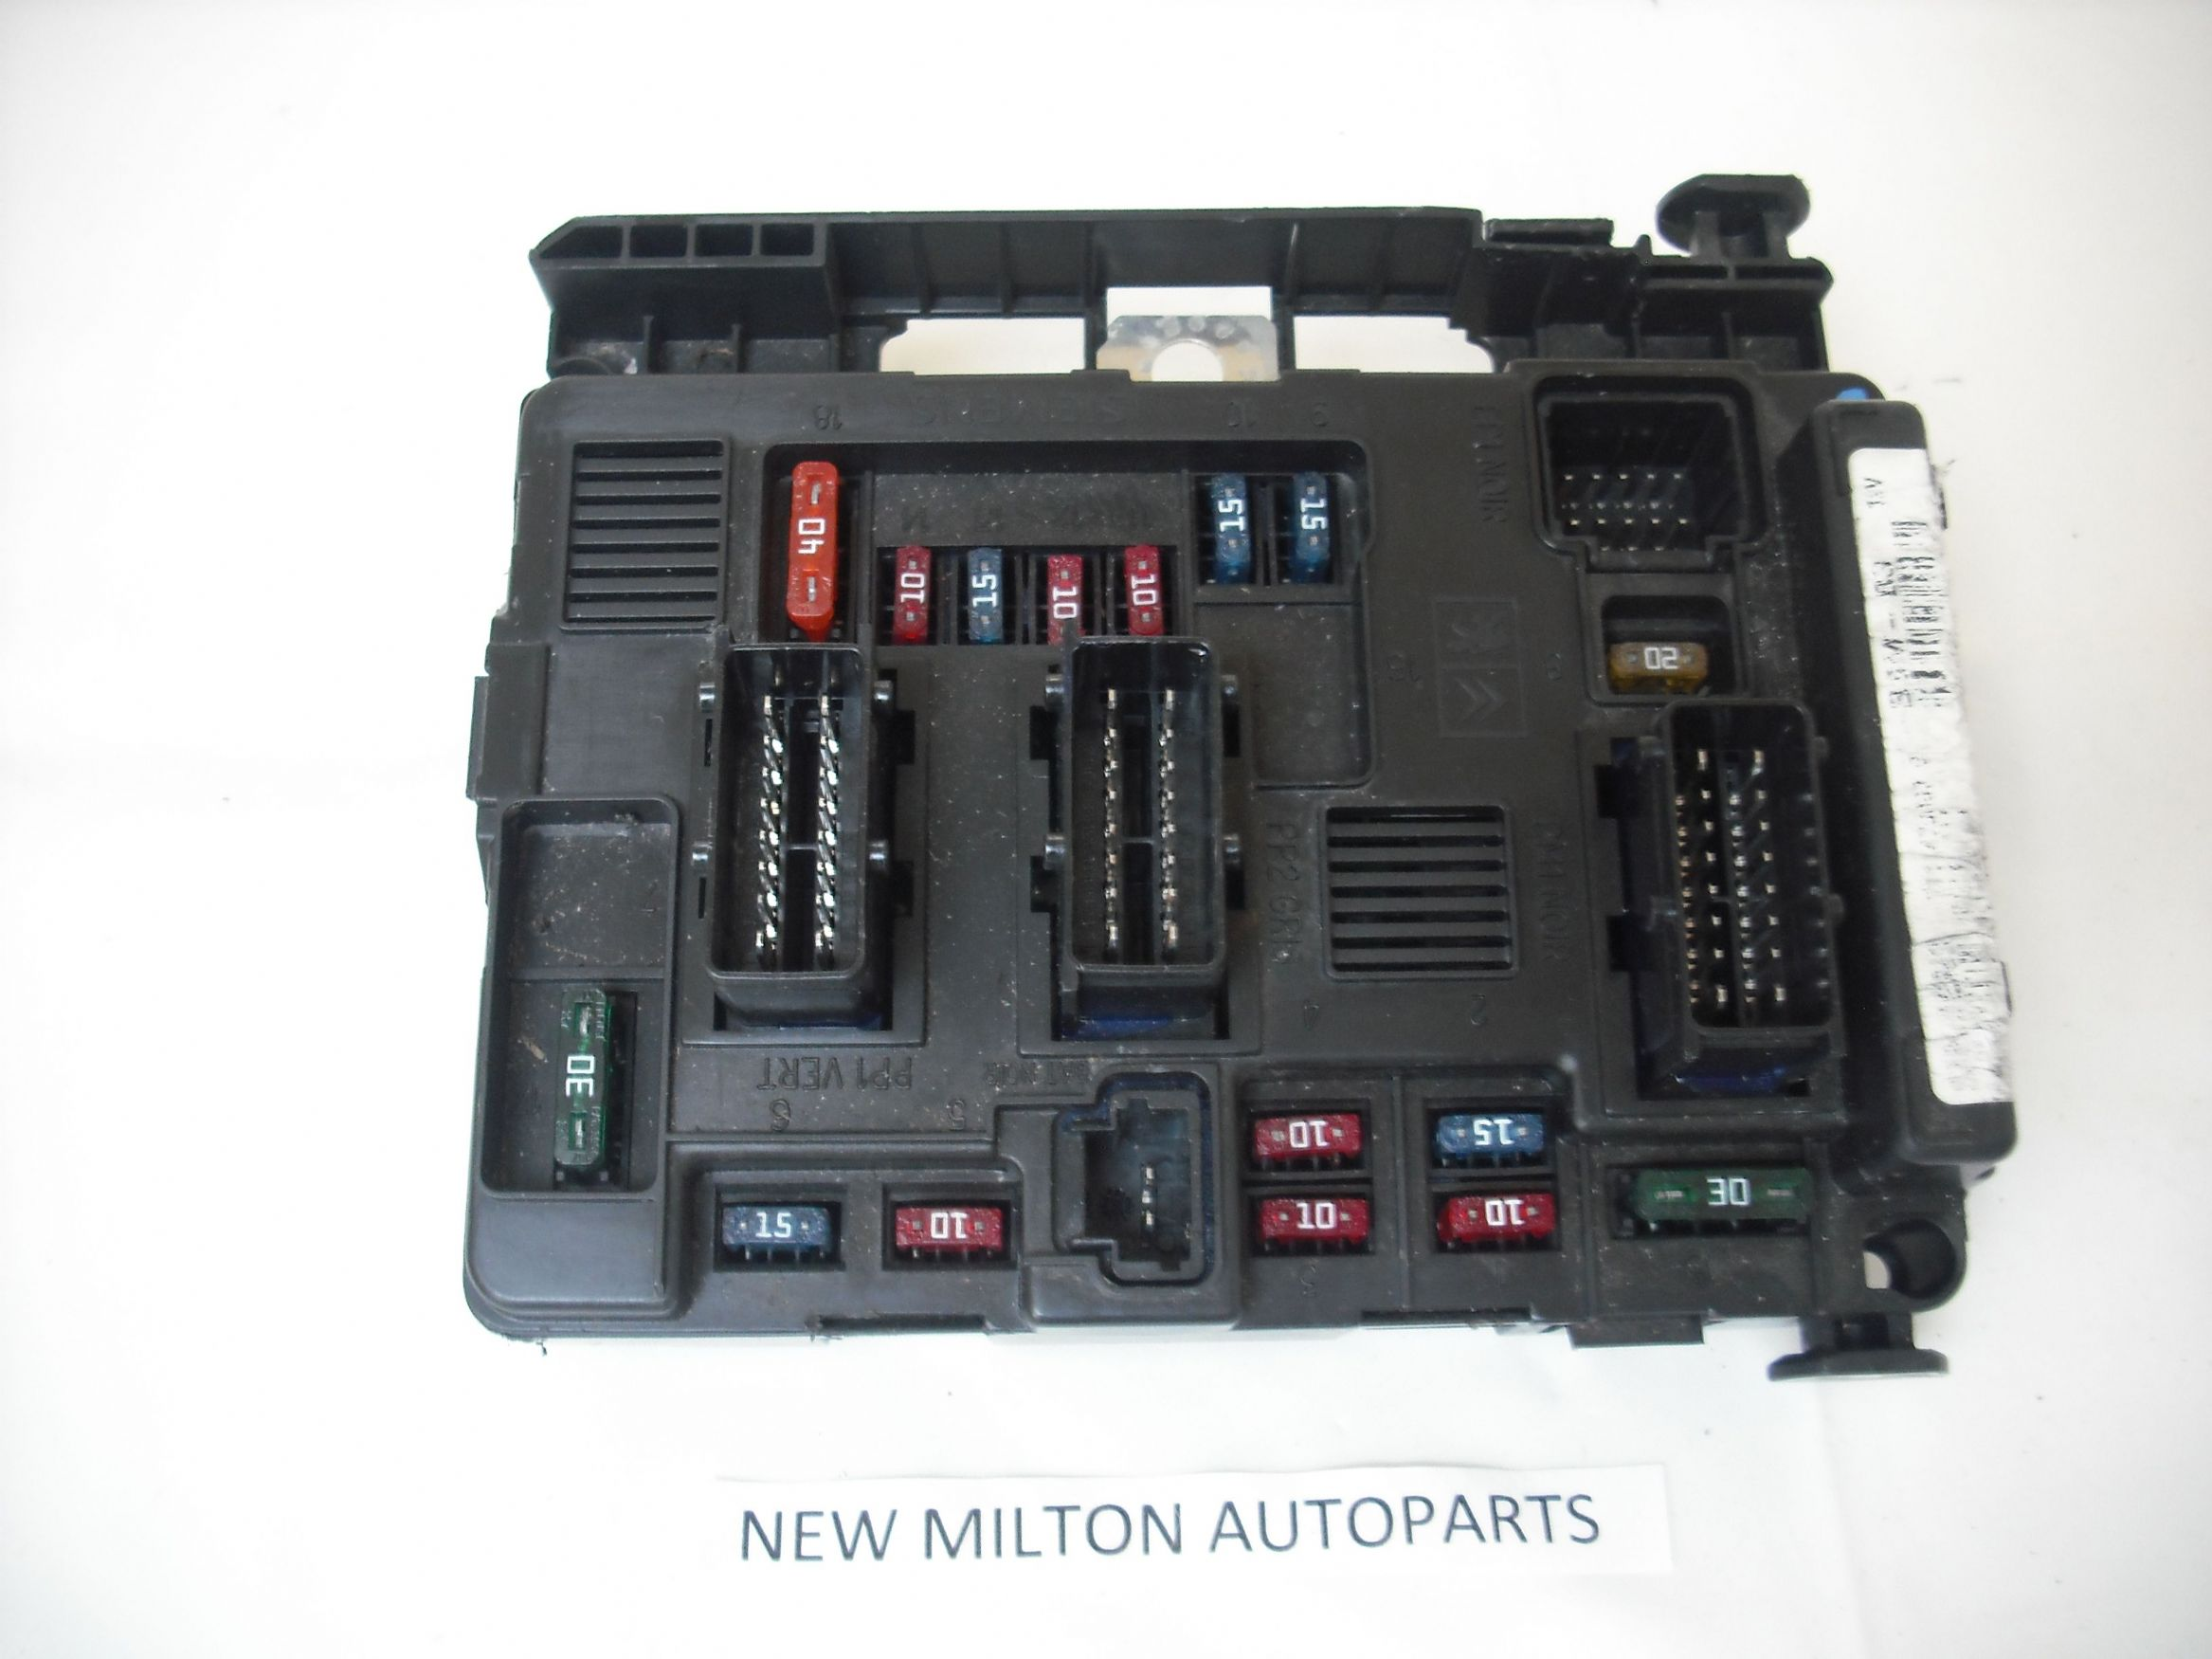 Citroen C5 2000 2004 Fuse Box Controller Subject To A Part Number 2006 A4 Numbers Match Bsm B3 9643498880 00